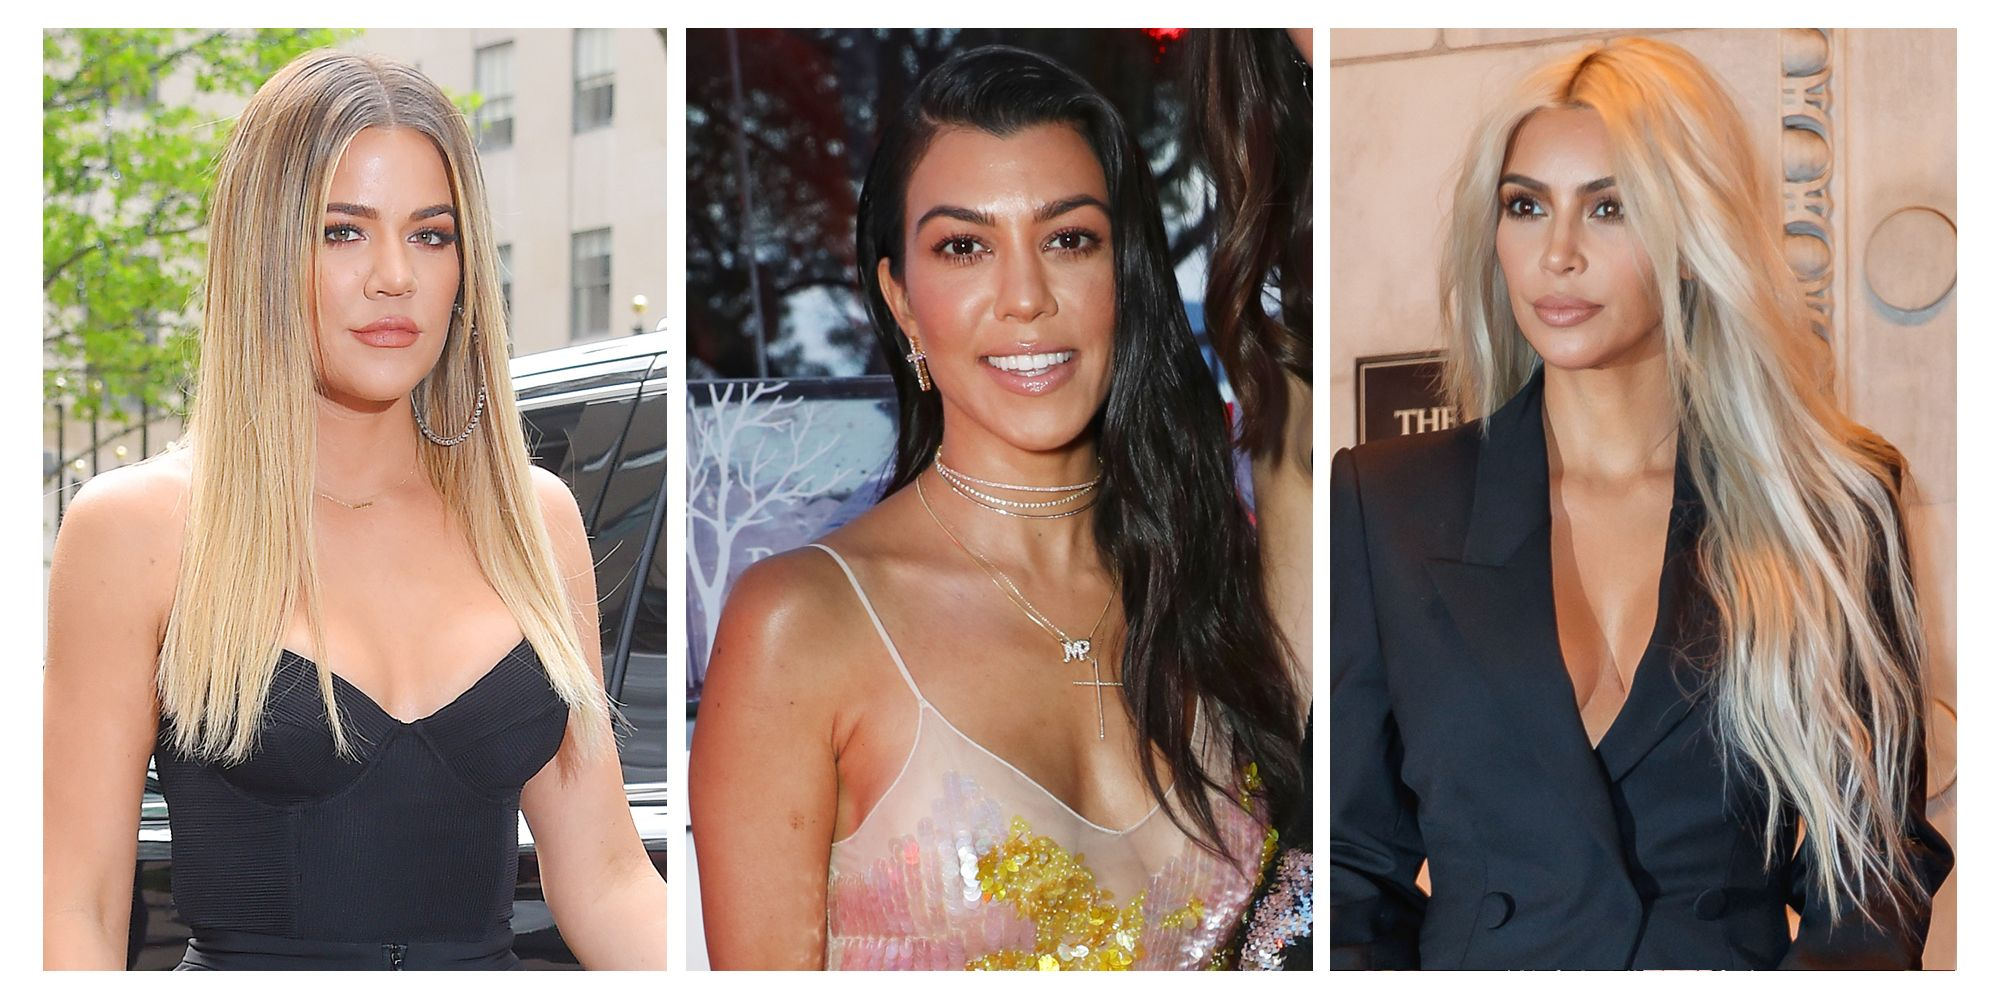 Kourtney Kardashian Has an Interesting Way of Showing Love For Kim and Khloé